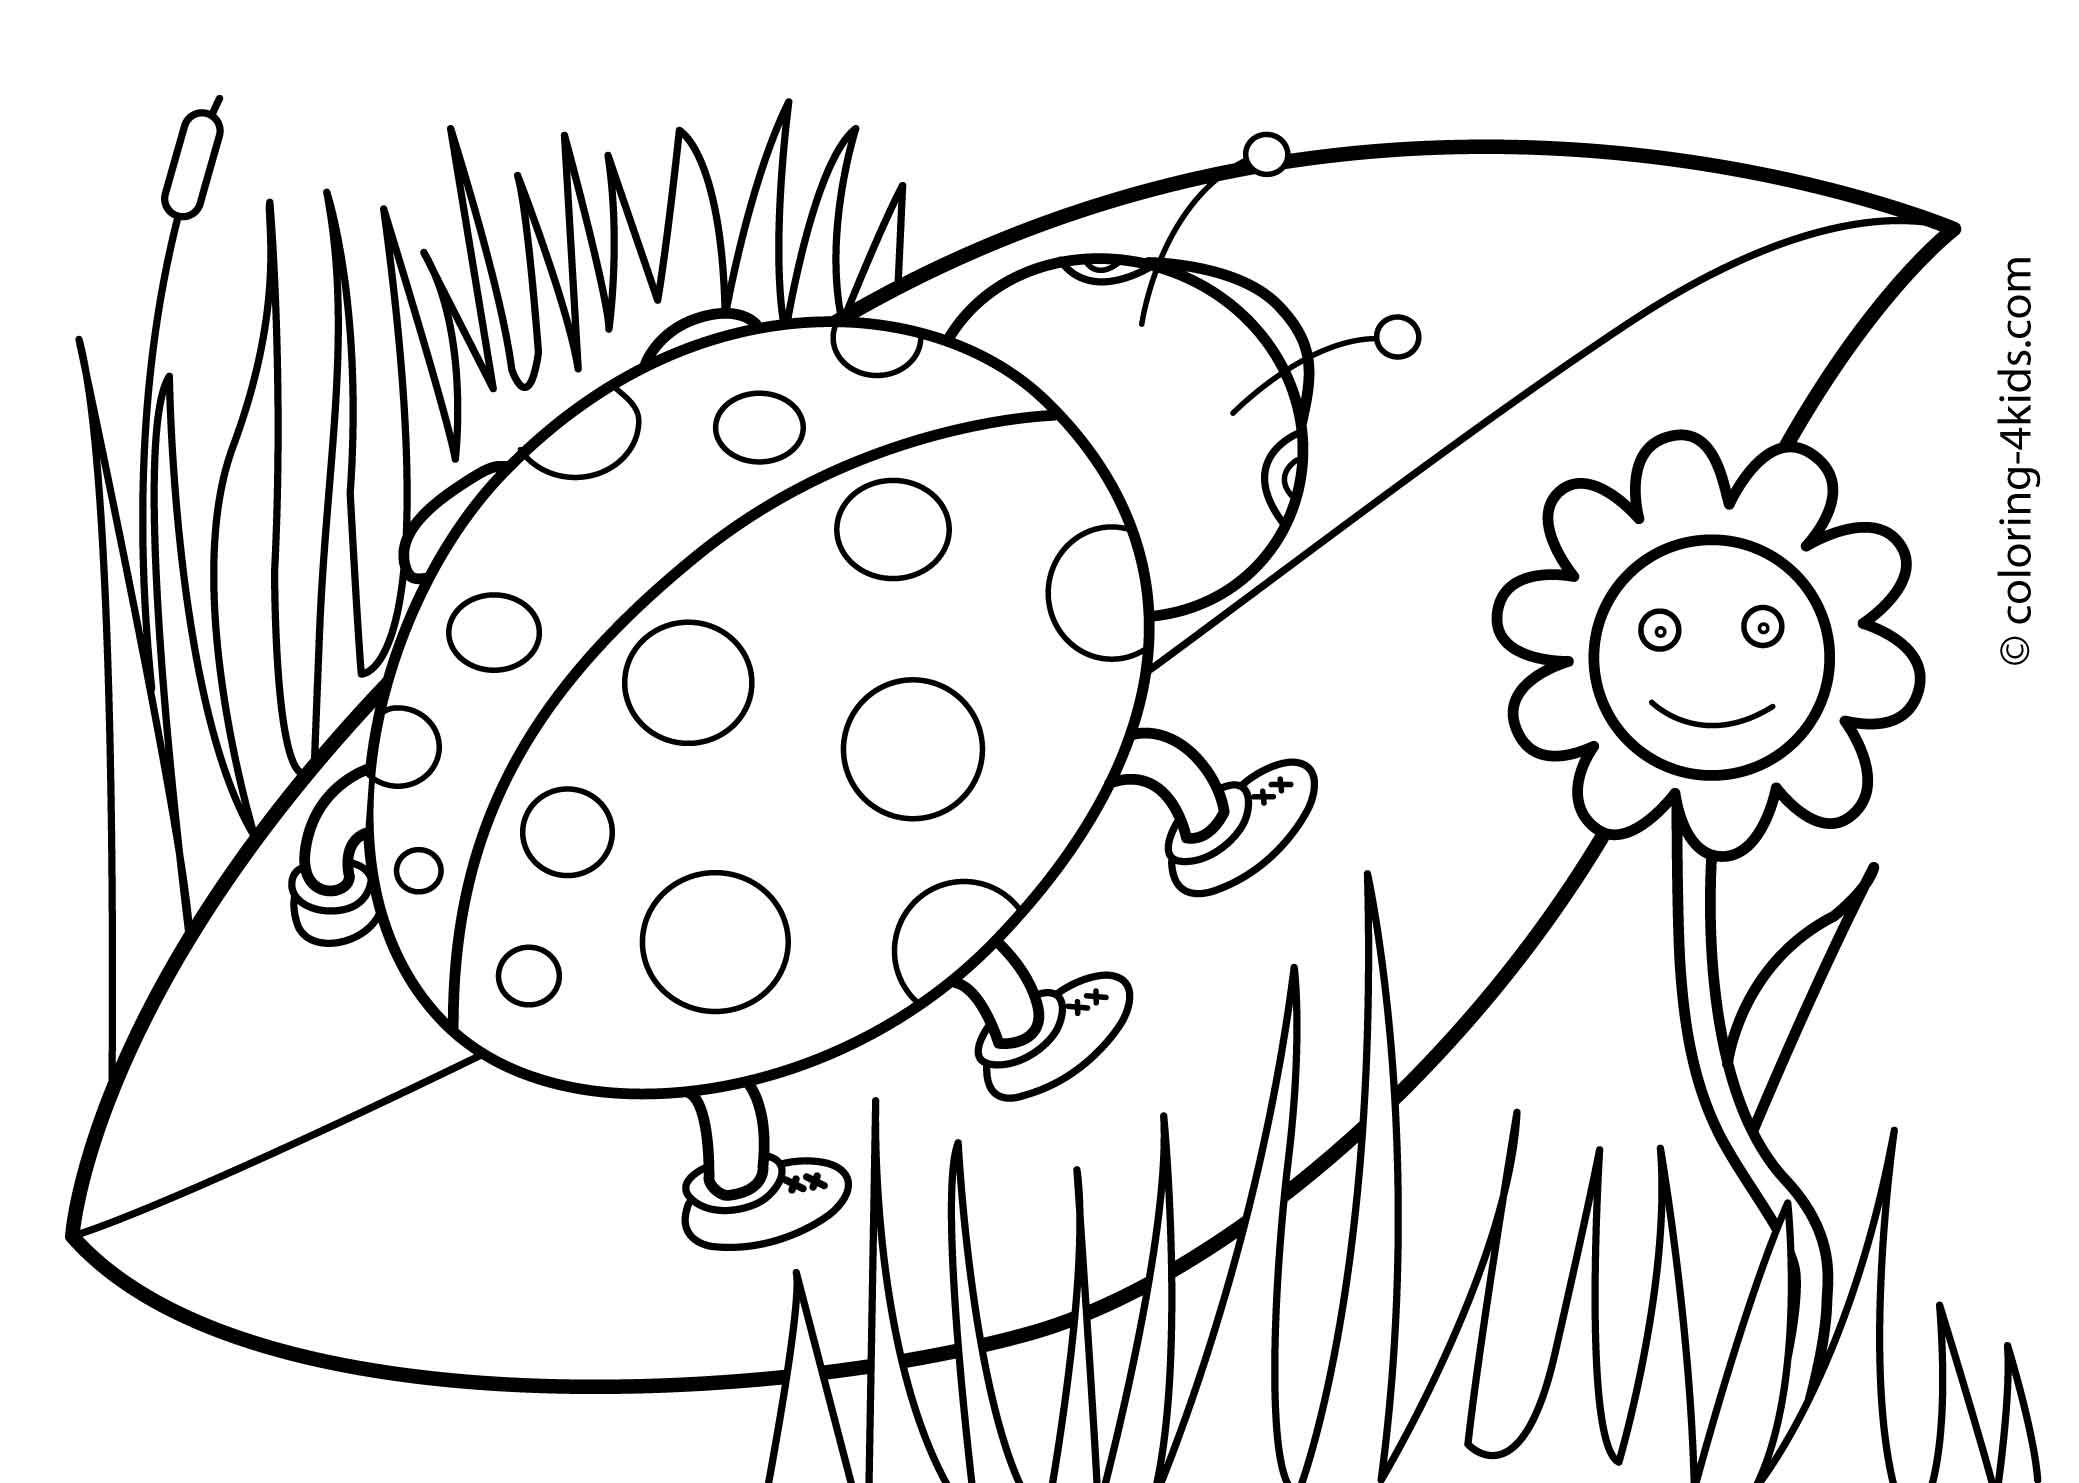 2079x1483 Revealing Springtime Pictures To Color Spring Coloring Pages